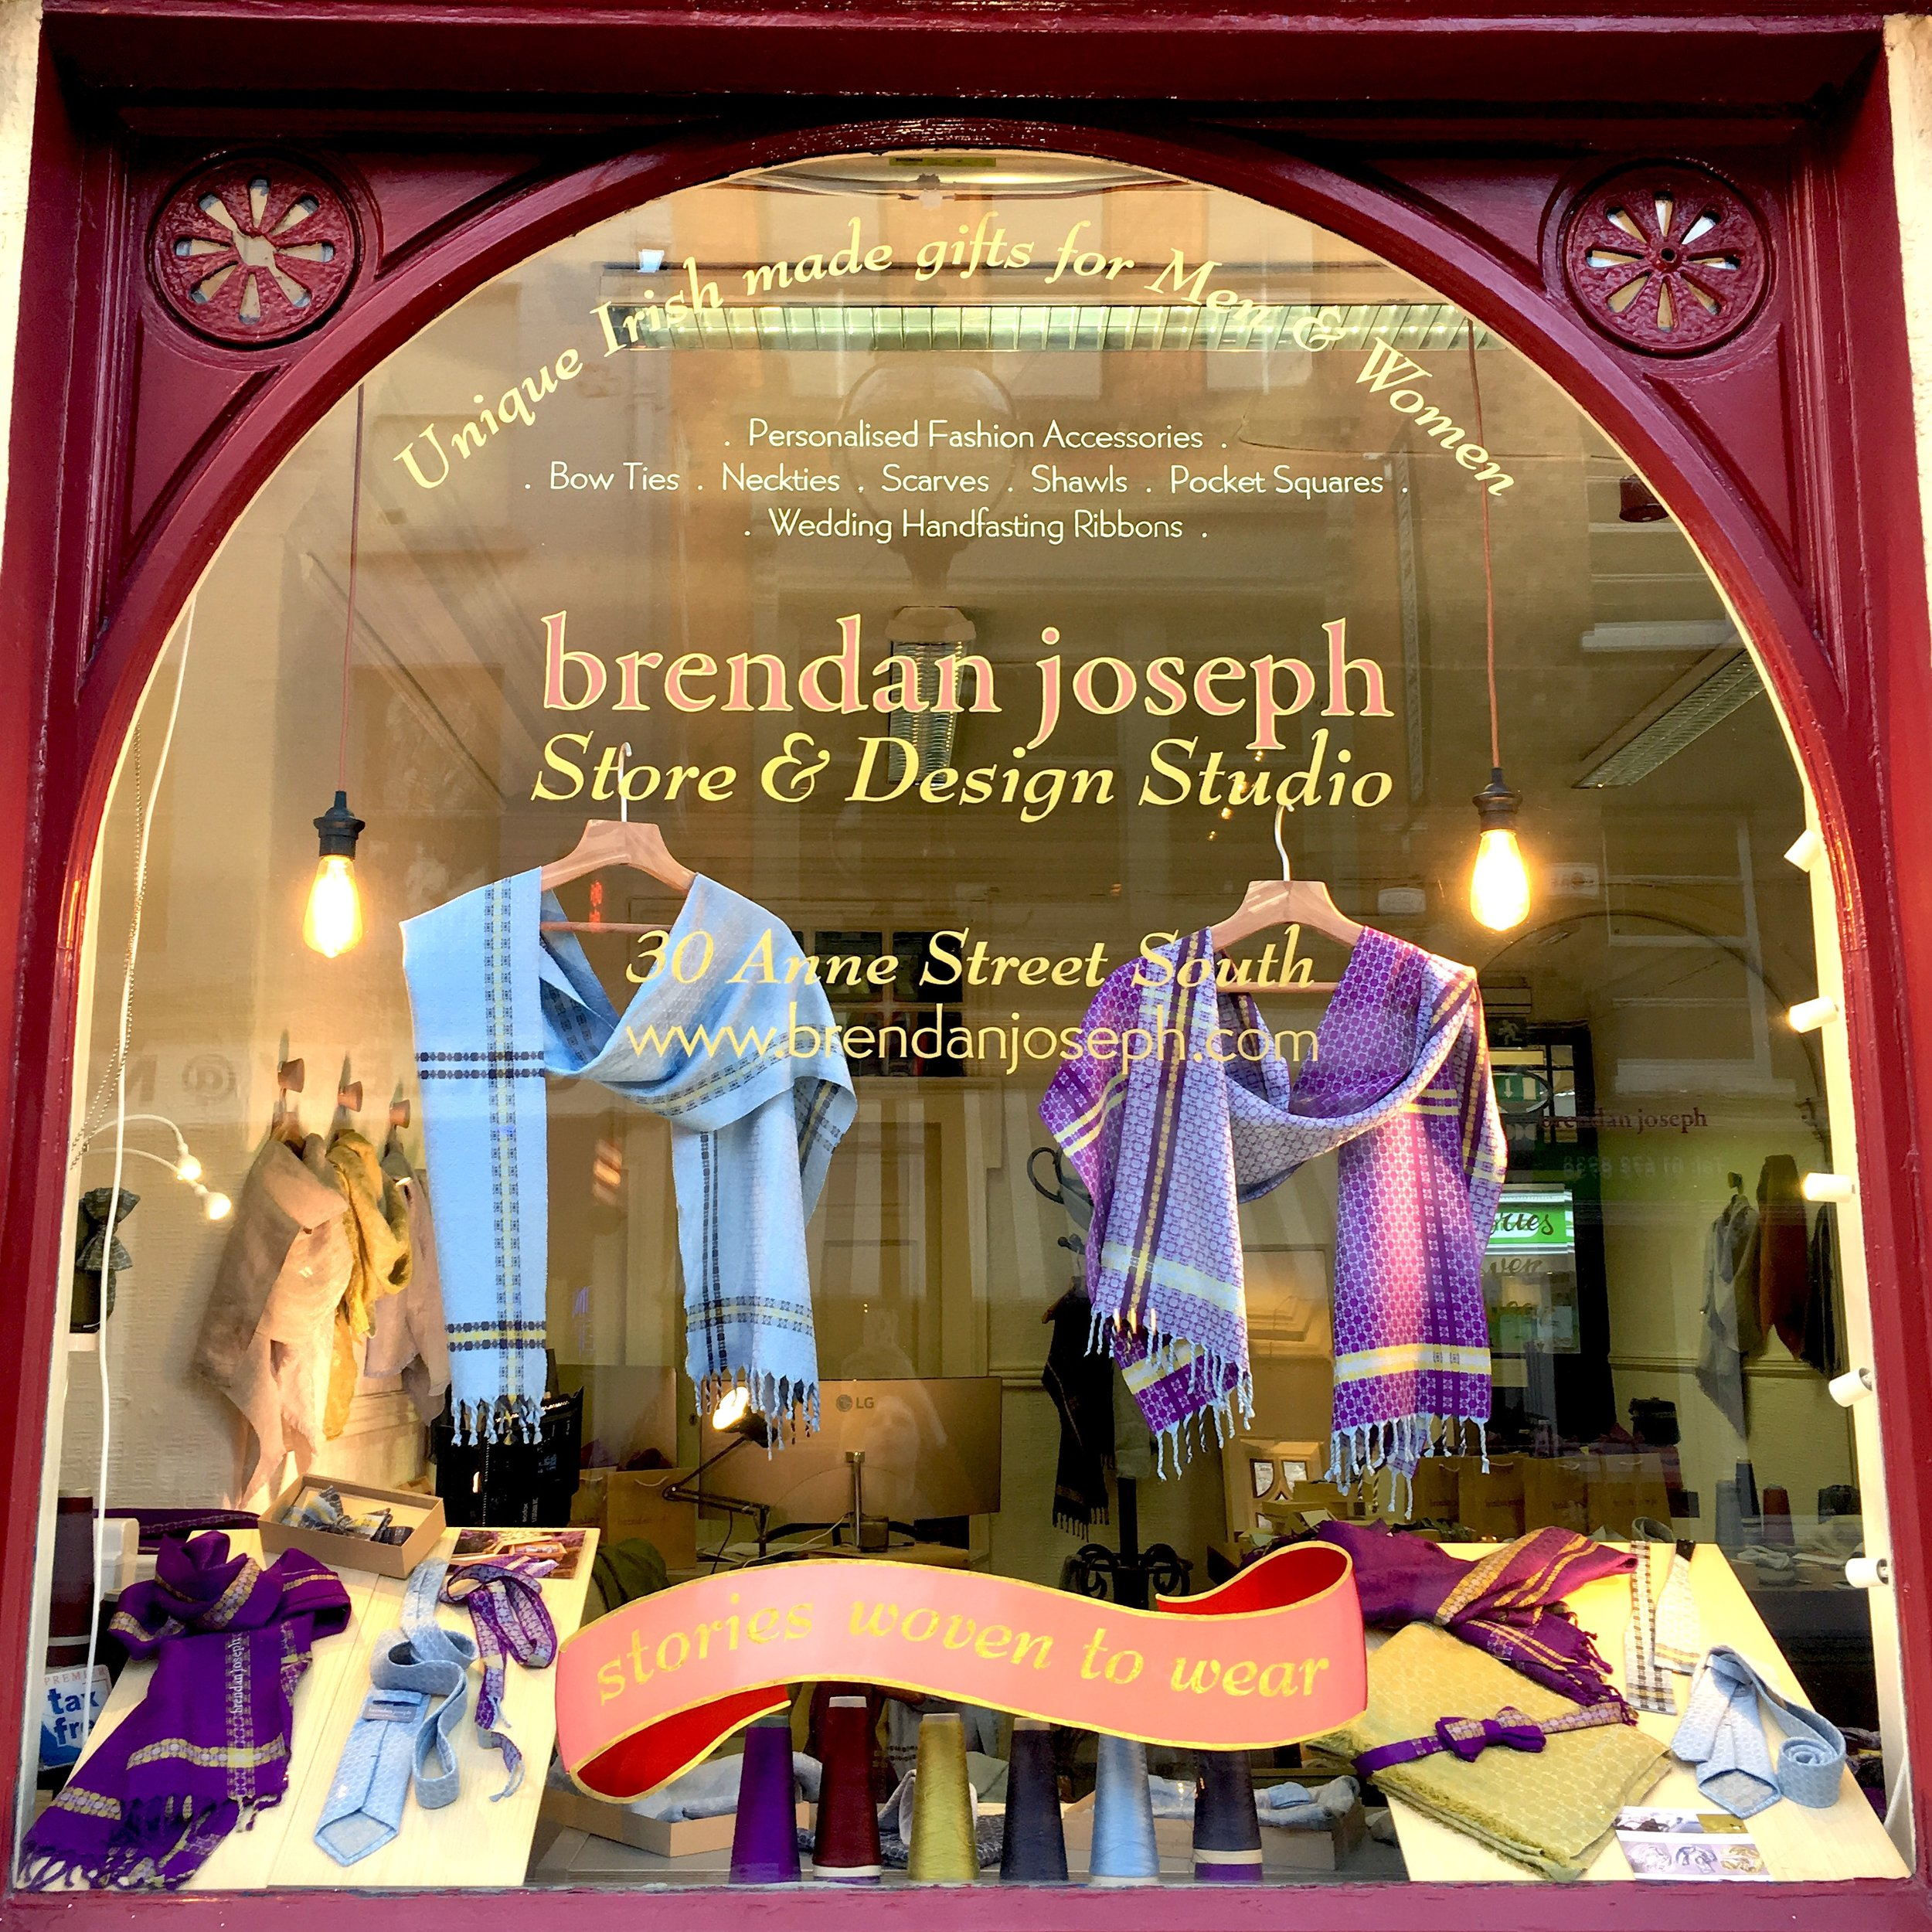 Our South Anne Street Store has closed. - We've moved from our Design Store & Studio at 30 Anne Street South, but Brendan is available for personal consultations in person in Dublin, or via telephone.Call (01) 491 4786 to arrange a private visit.